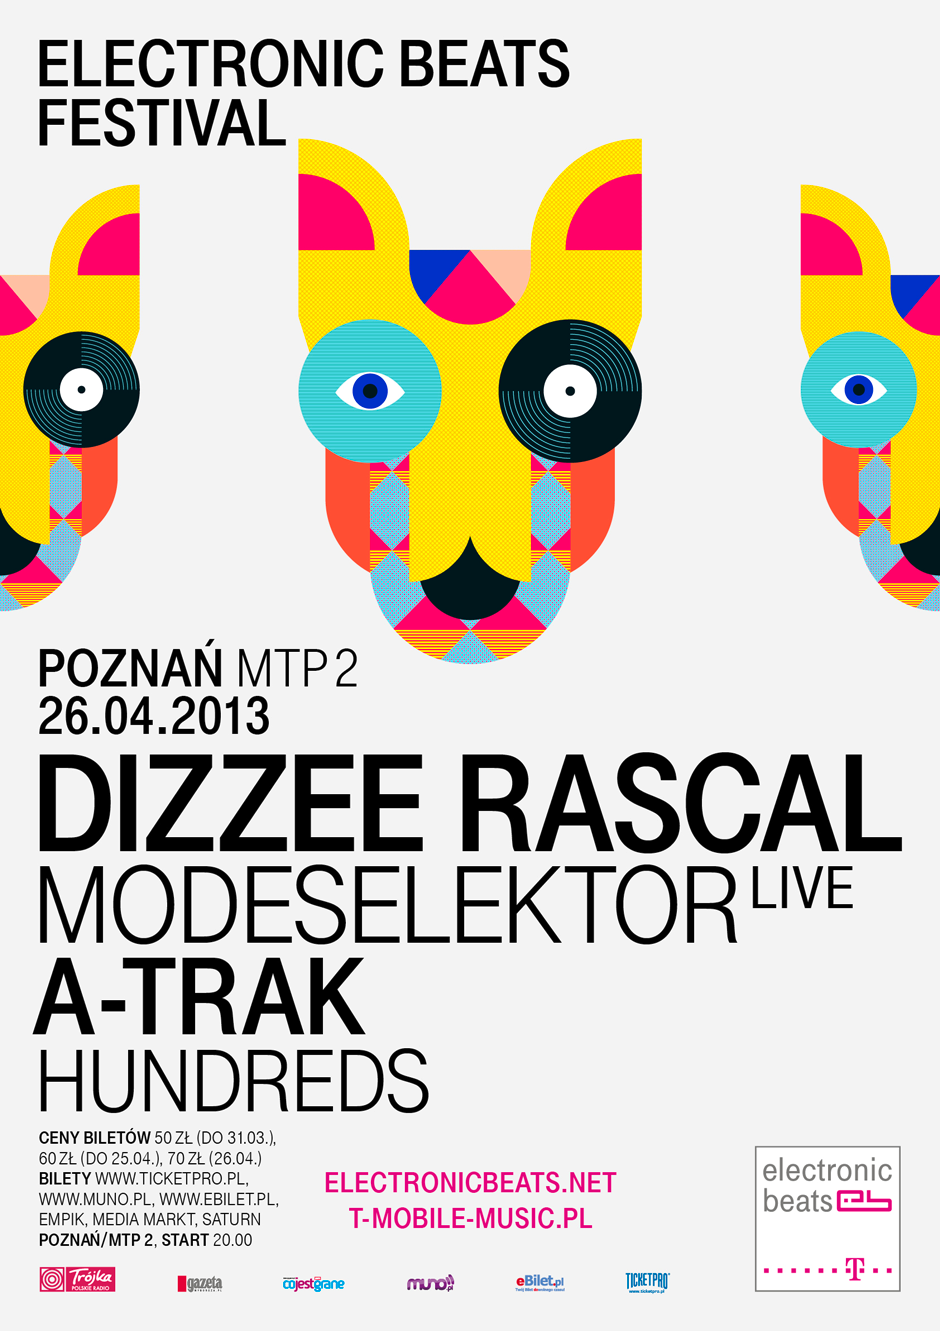 Electronic Beats Festival Poznań 2013: Hundreds to join A-Trak and Modeselektor